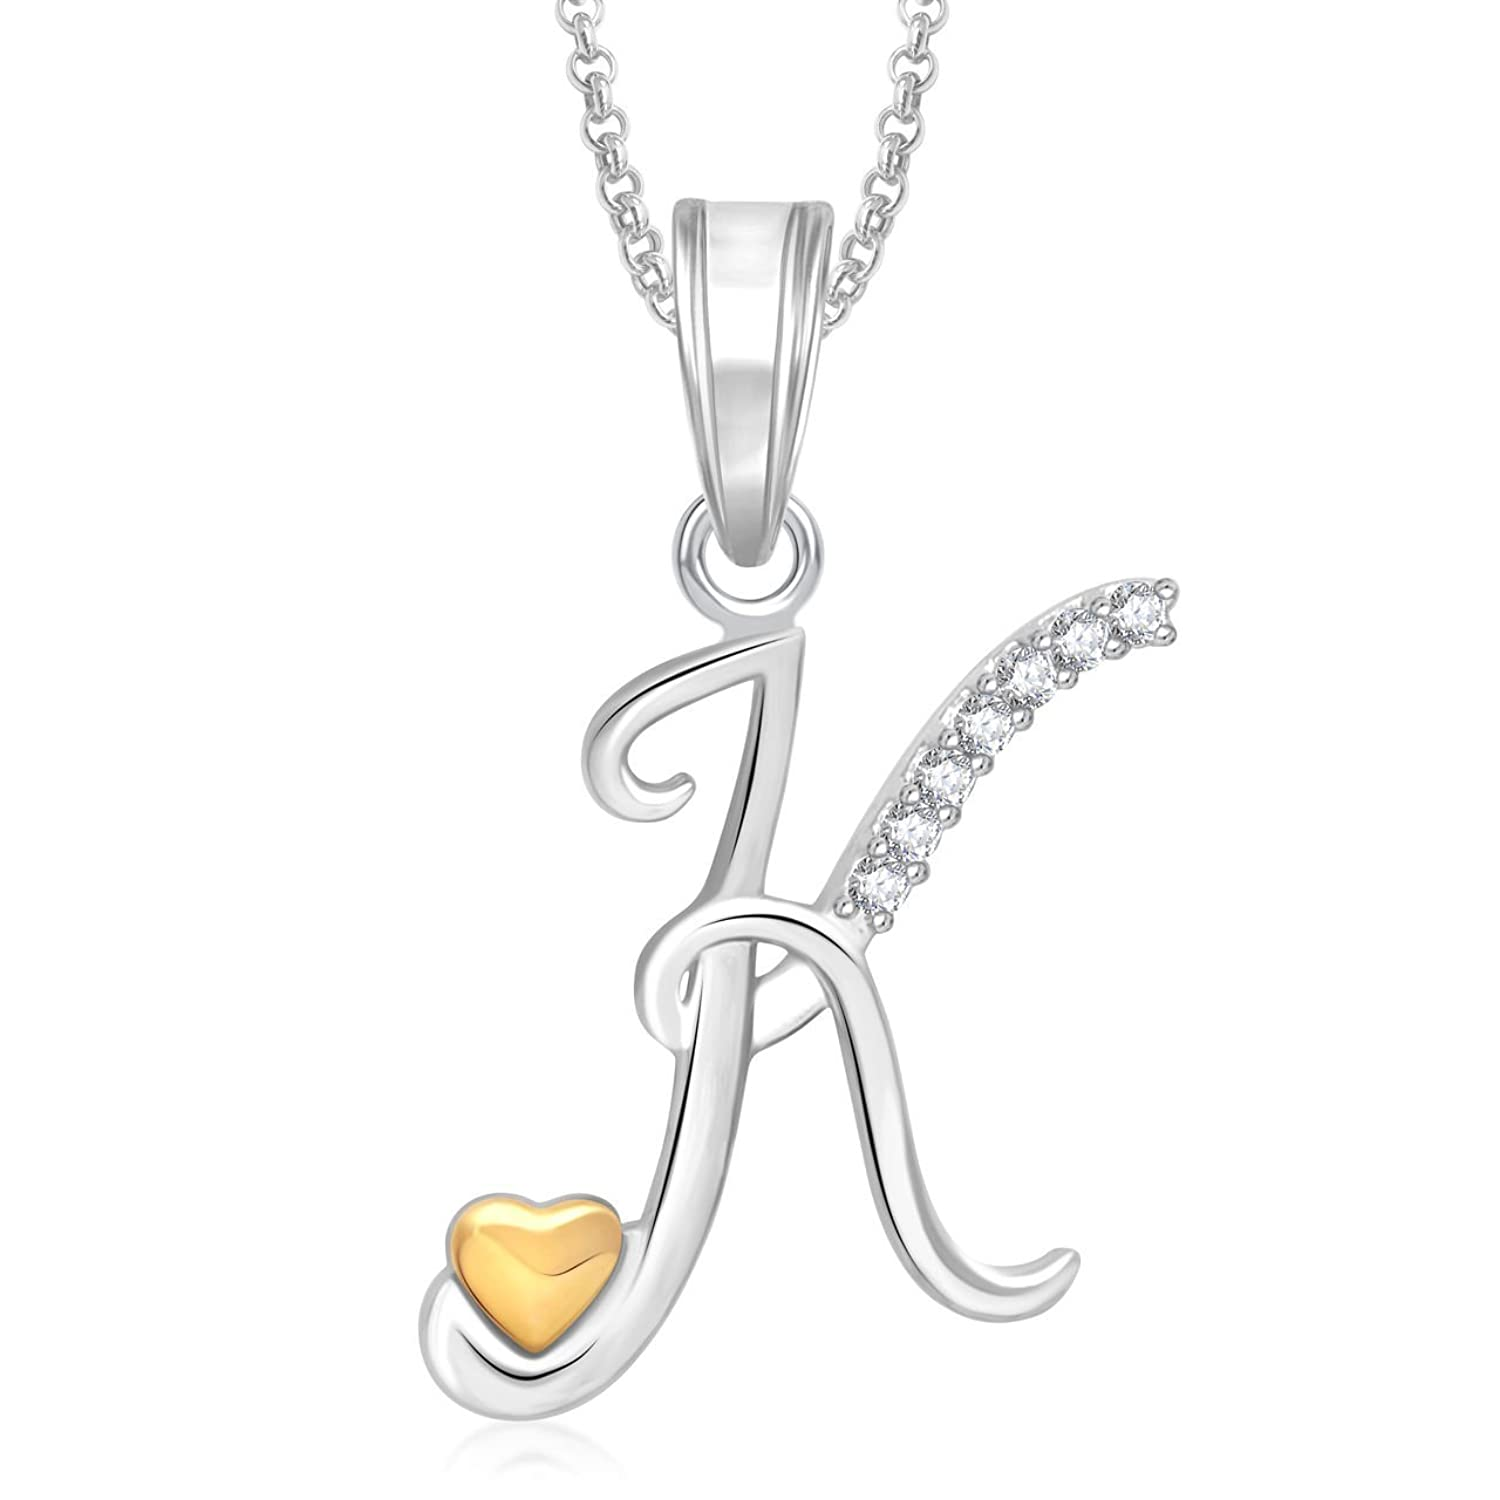 platinum plated wedding necklace gold lockets party more views pendants pendant daily golden necklaces jewelry index casual silver